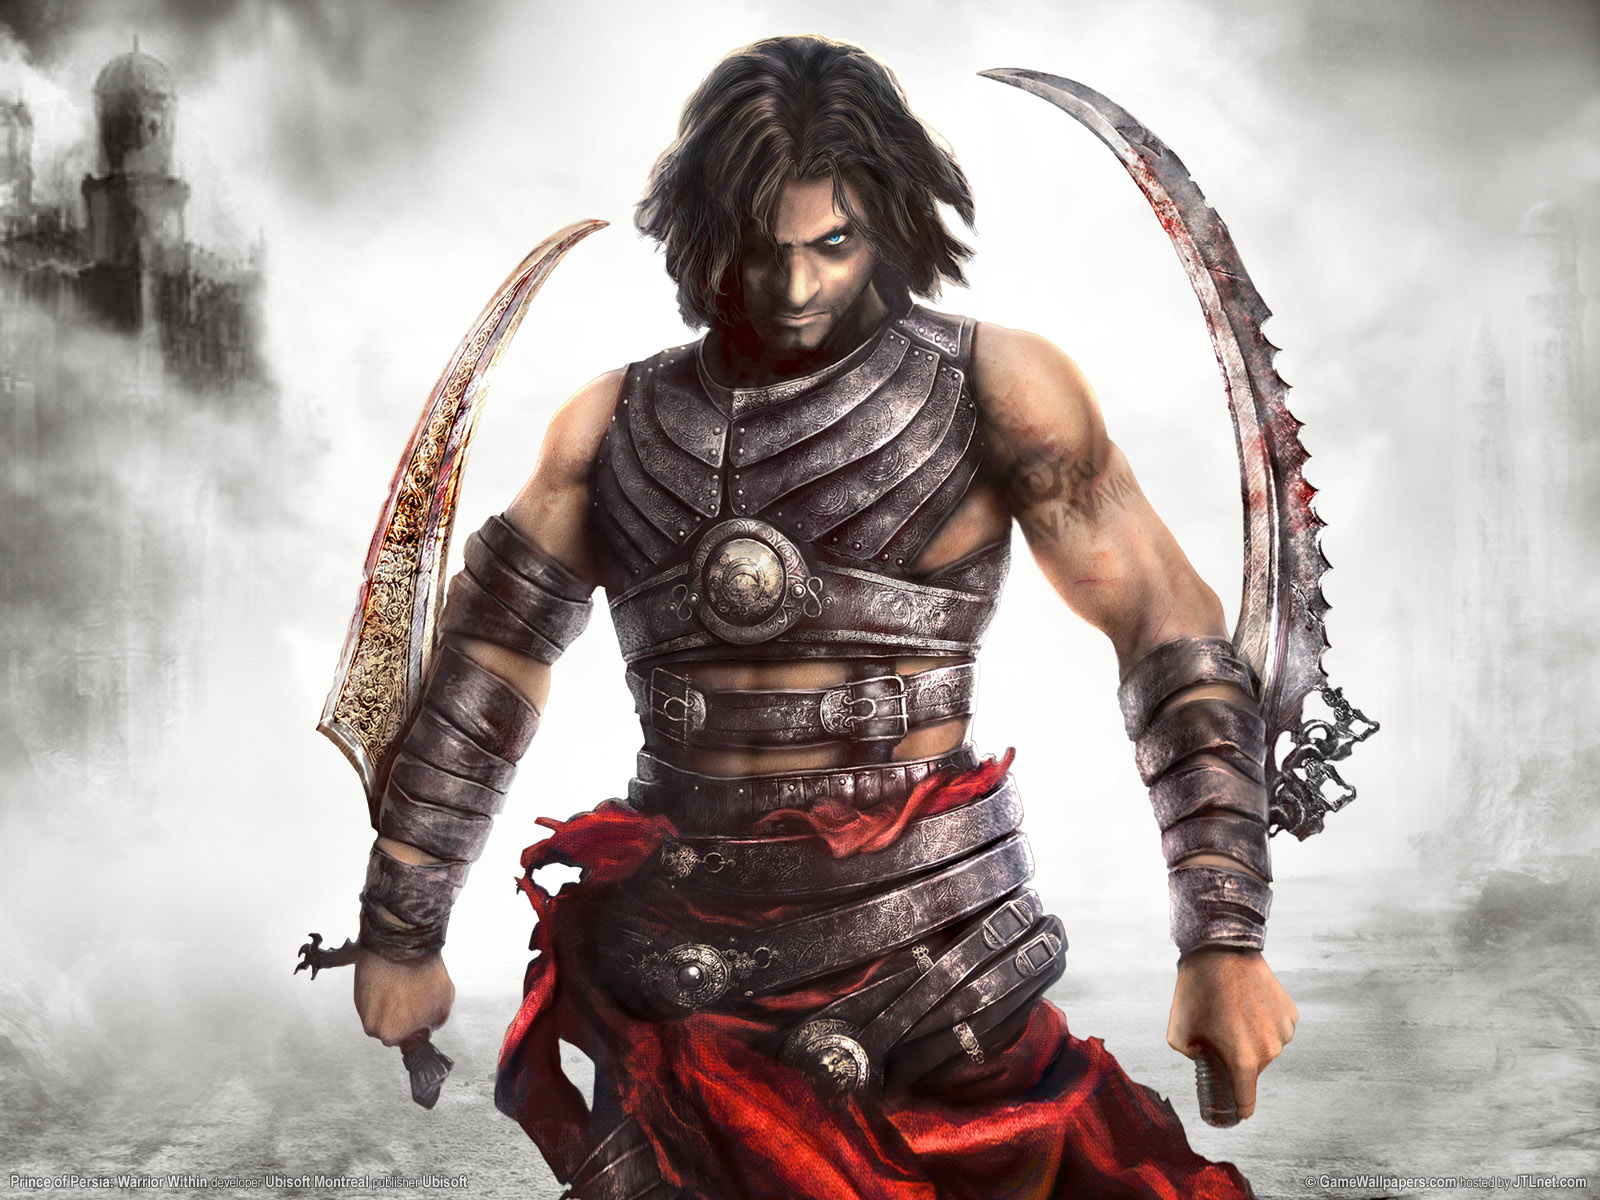 Prince of Persia Trilogy + HD + 3d + exclusividad para europa = EPIC FAIL!